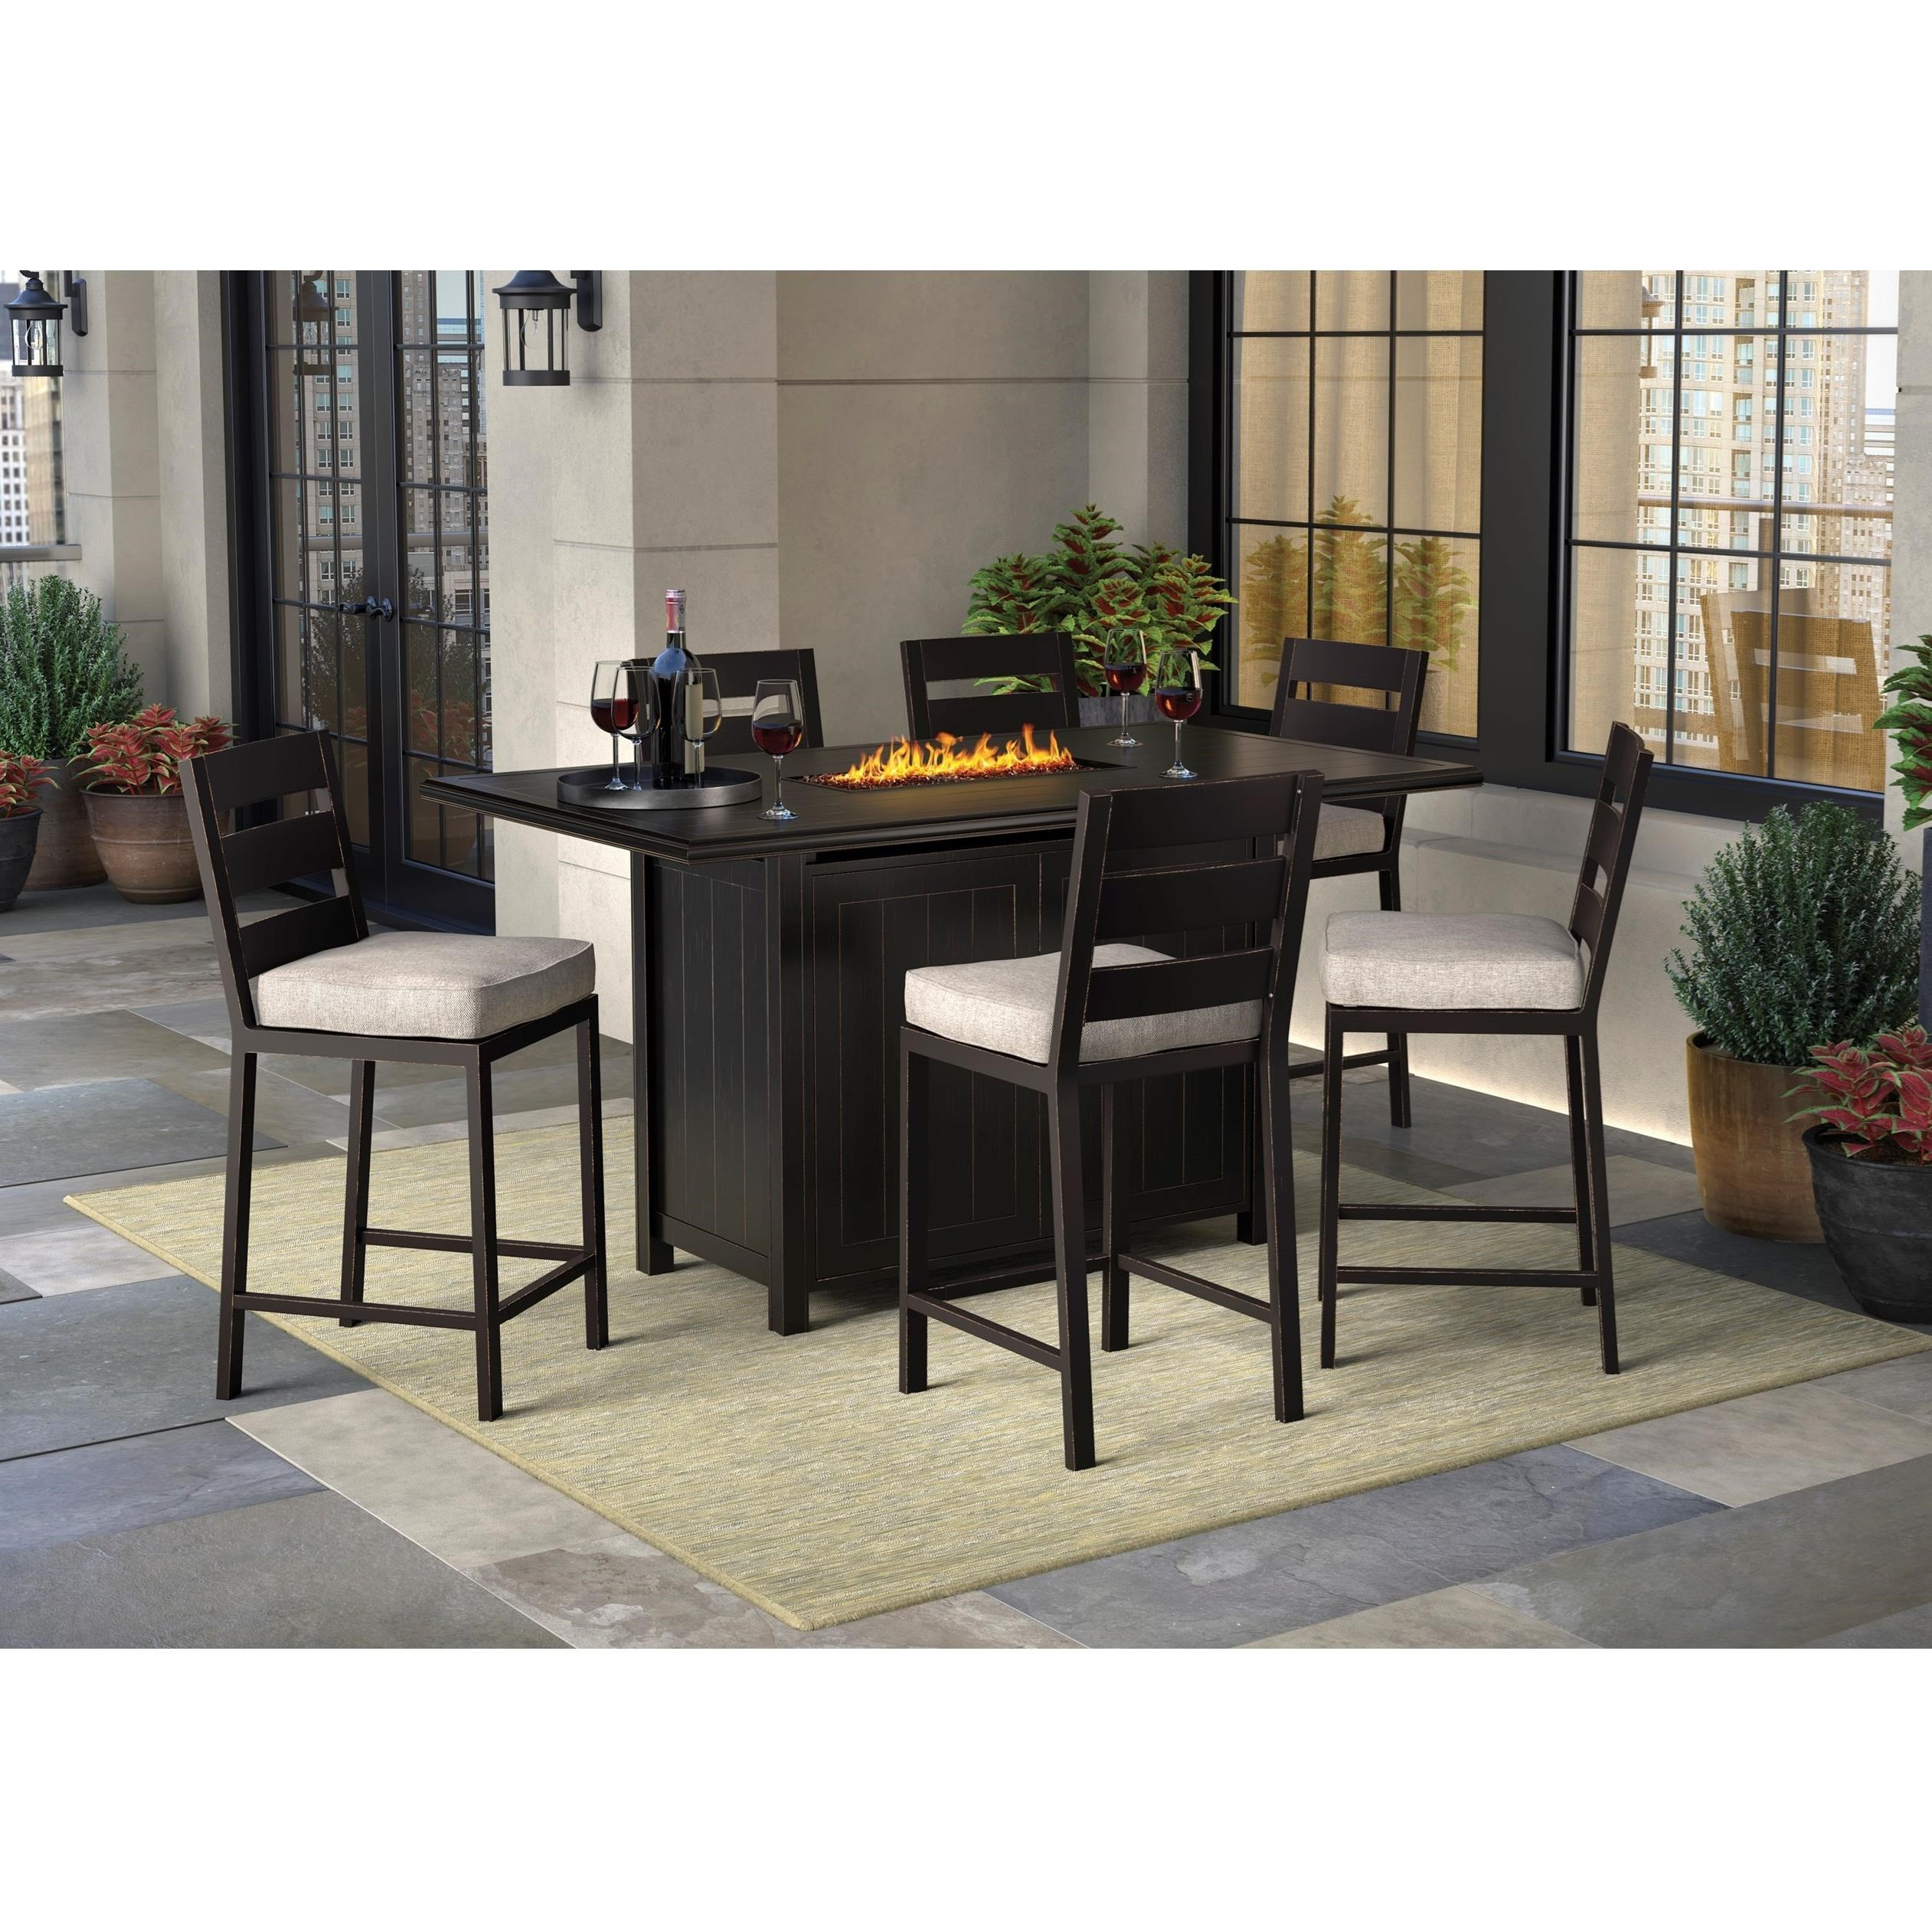 Signature Design By Ashley Perrymount 7 Piece Pub Dining Set With Fire Pit  Table